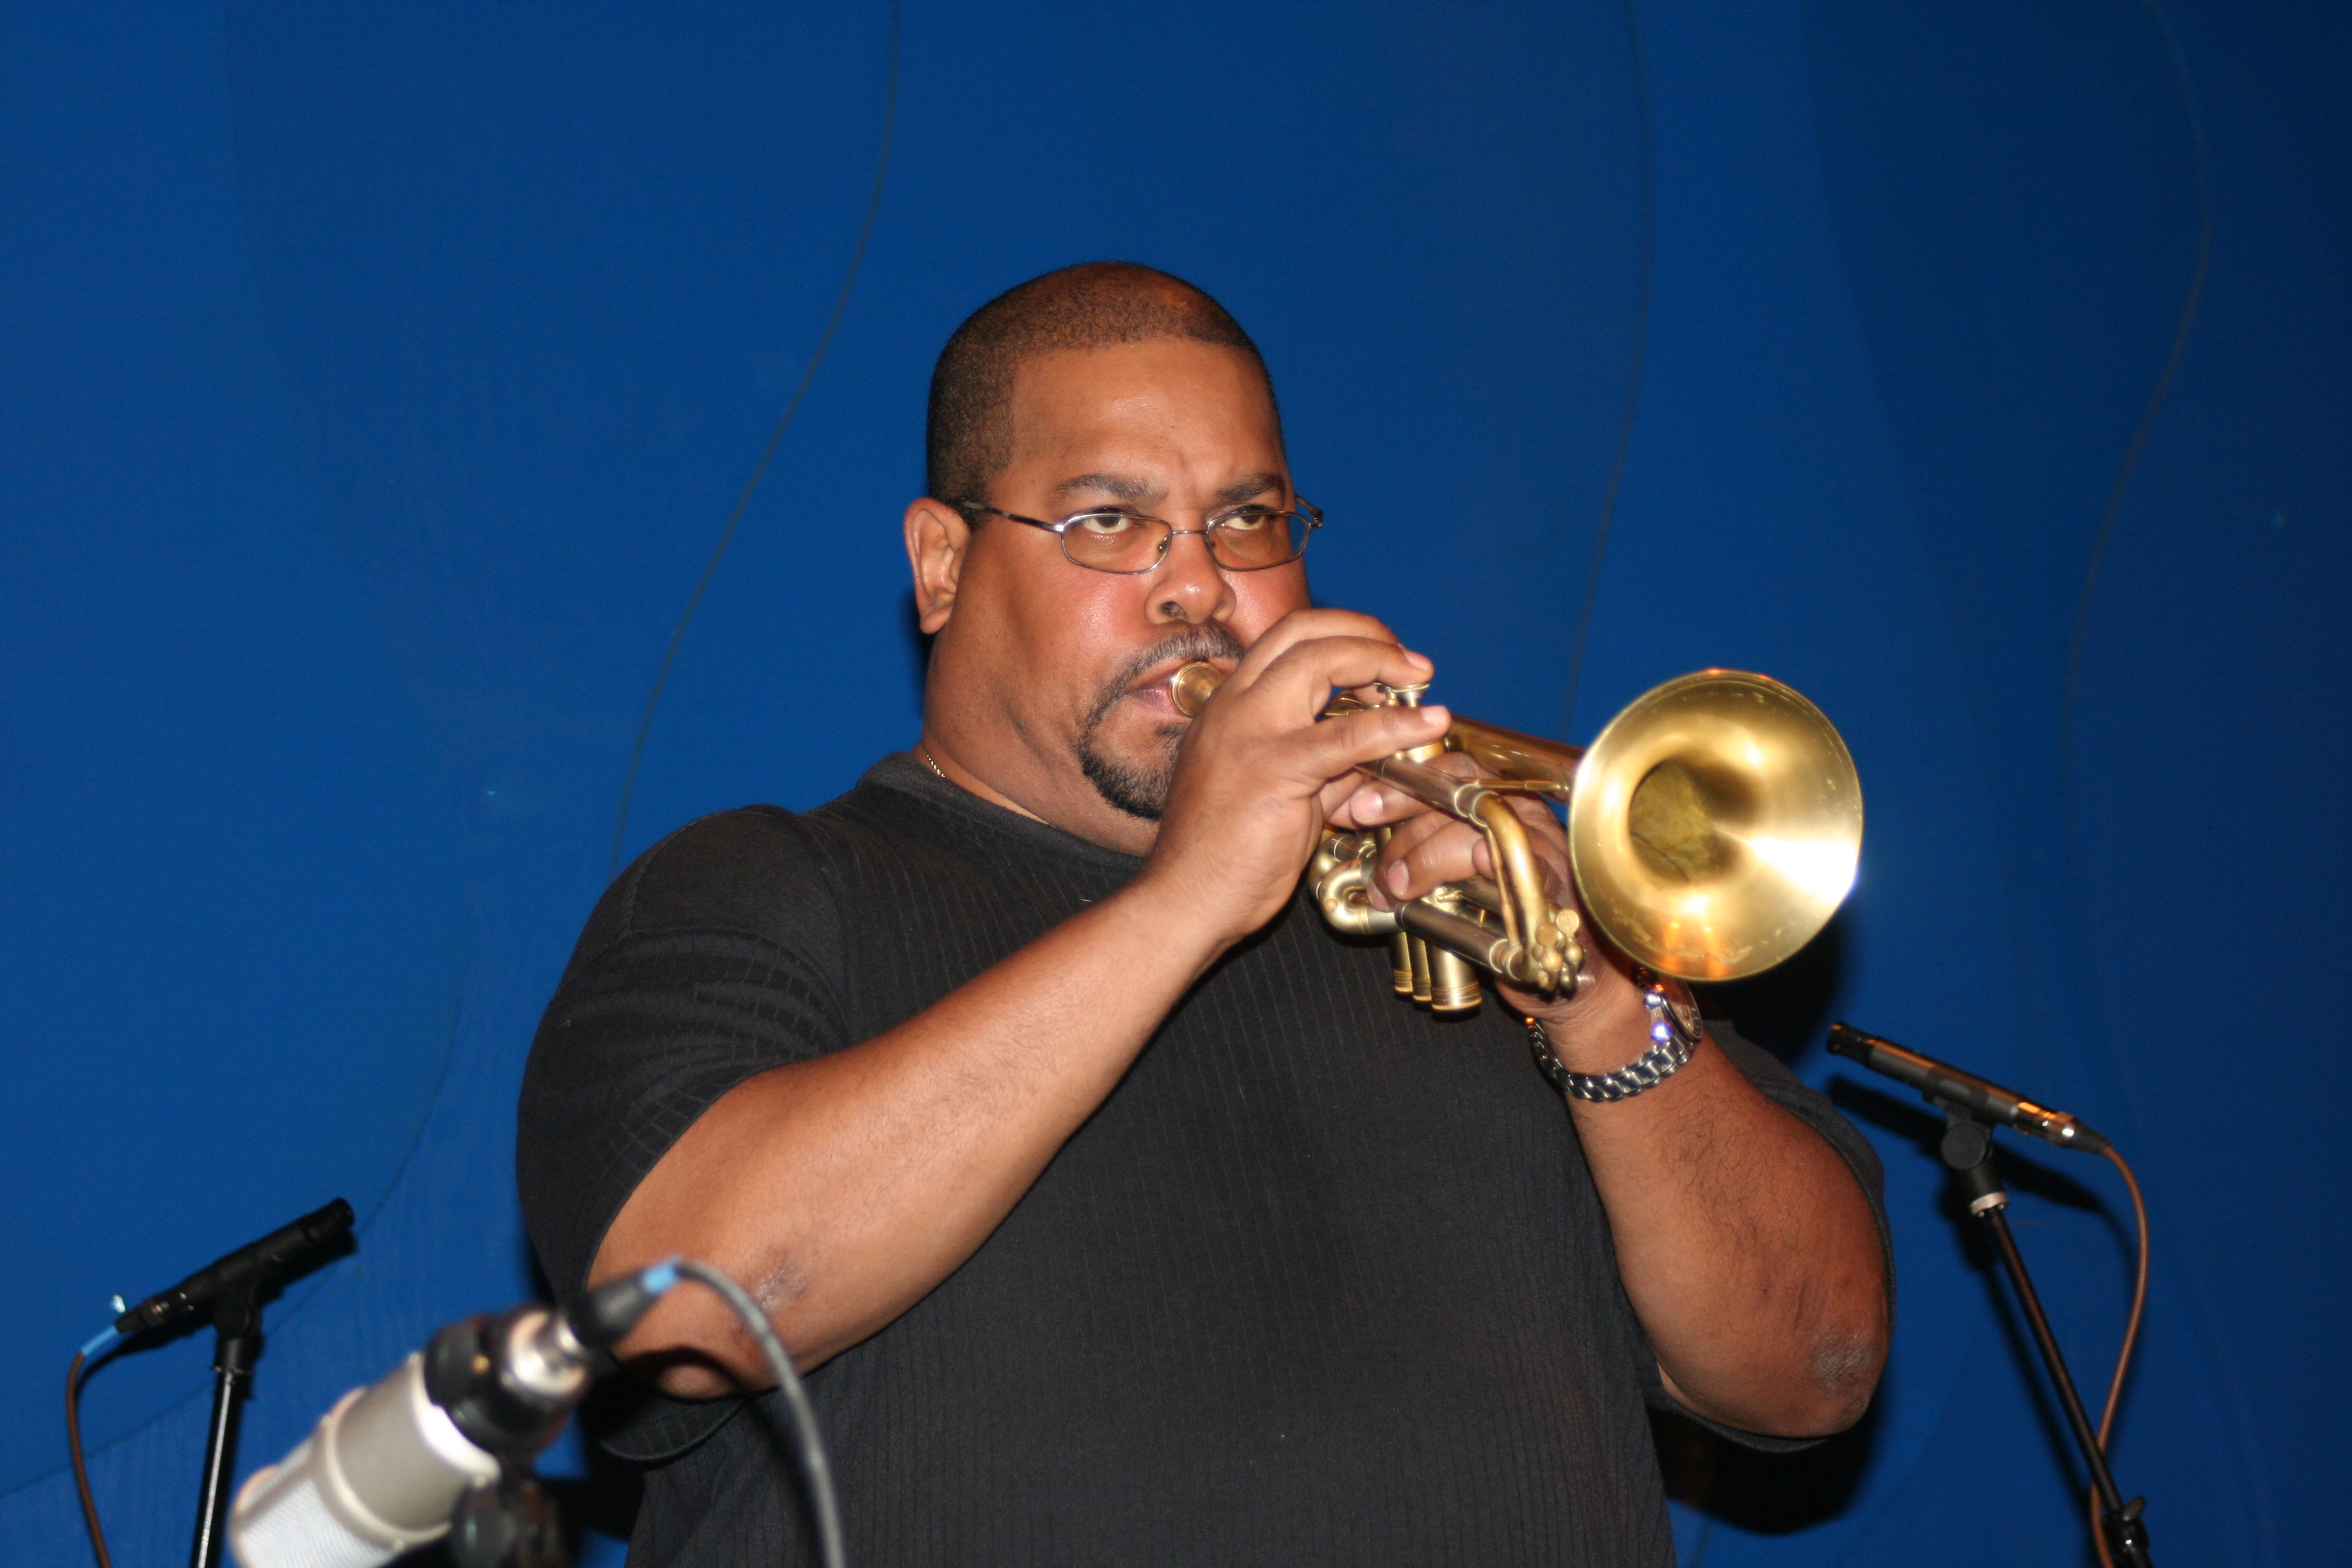 Pharez whitted band @ jazz kitchen 2013